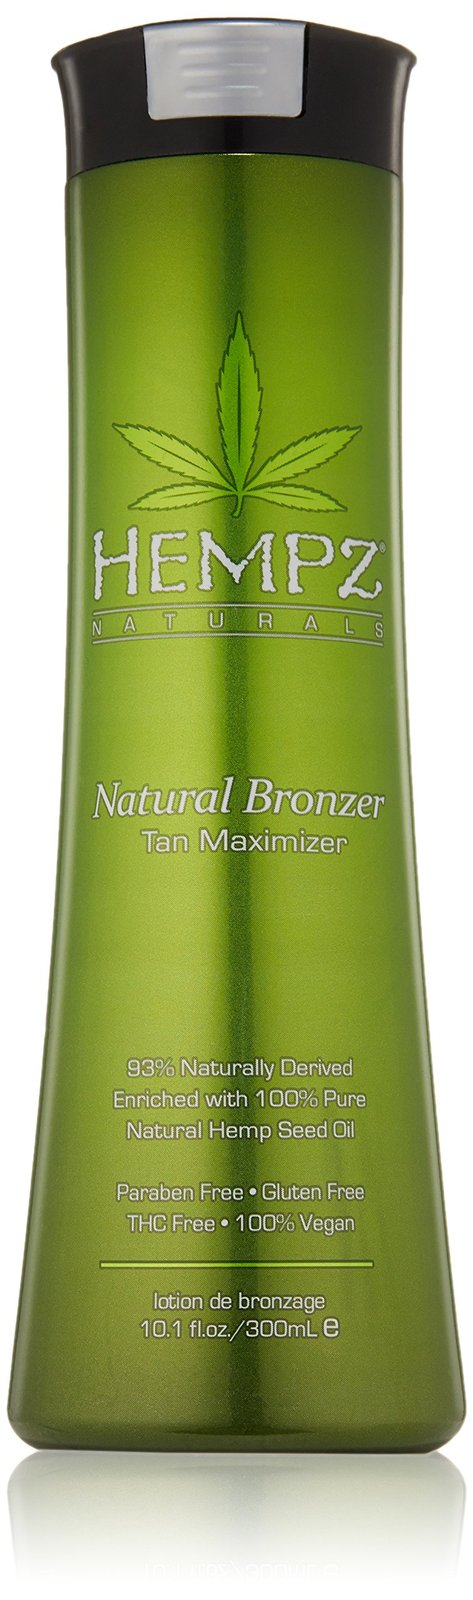 HEMPZ by Hempz: NATURAL BRONZER TAN MAXIMIZER 10.1OZ